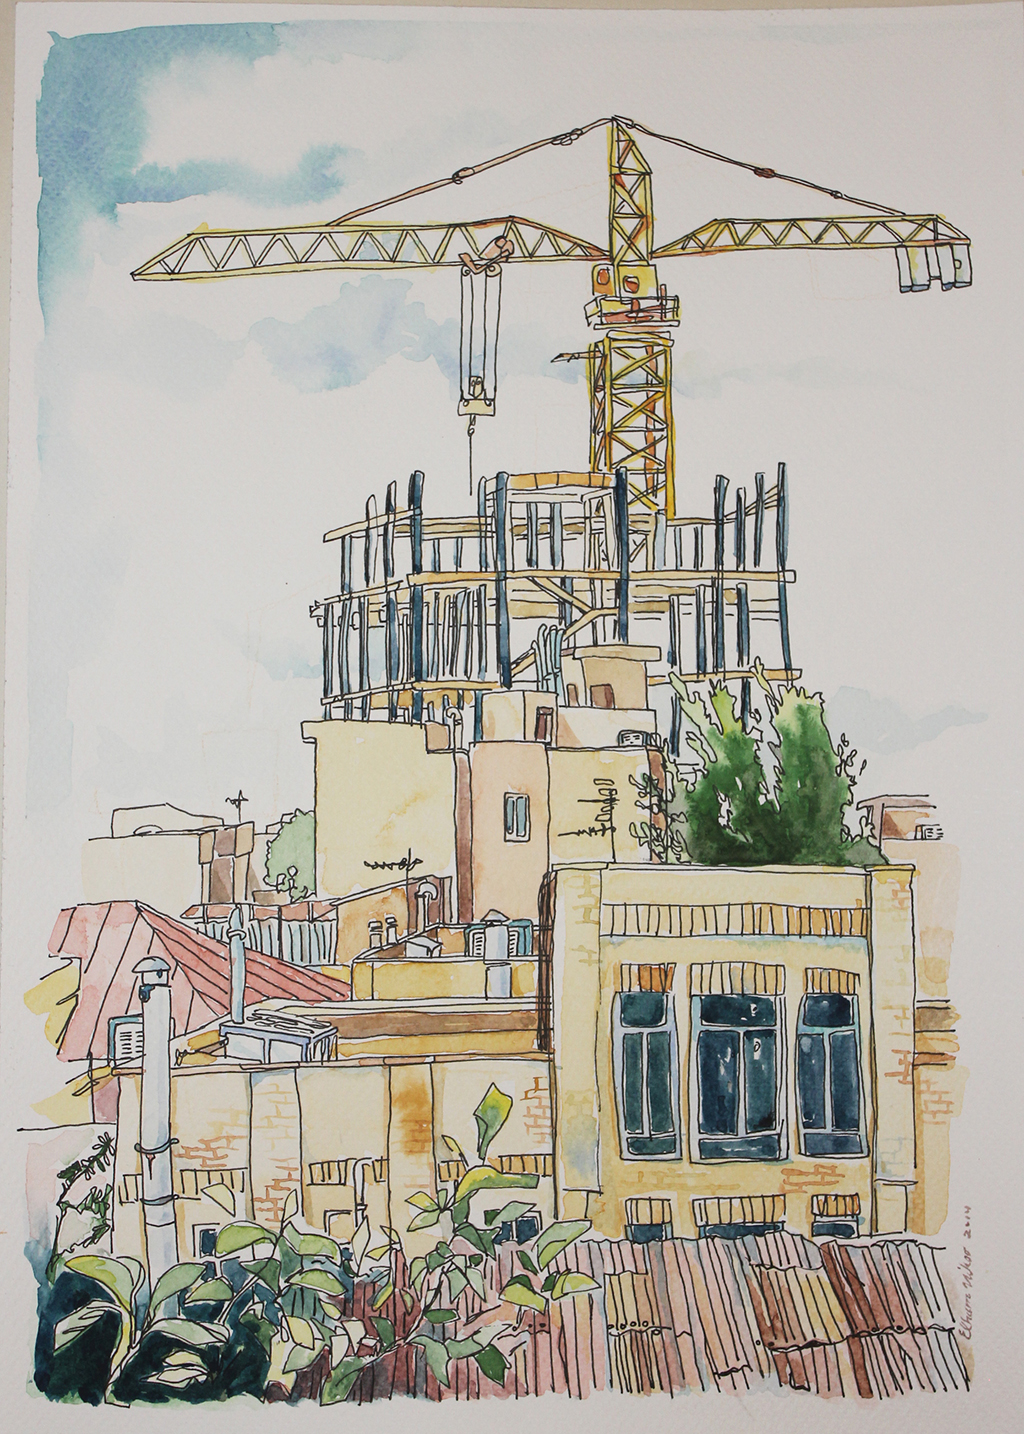 Water color and pen illustration of my window's view in Tehran